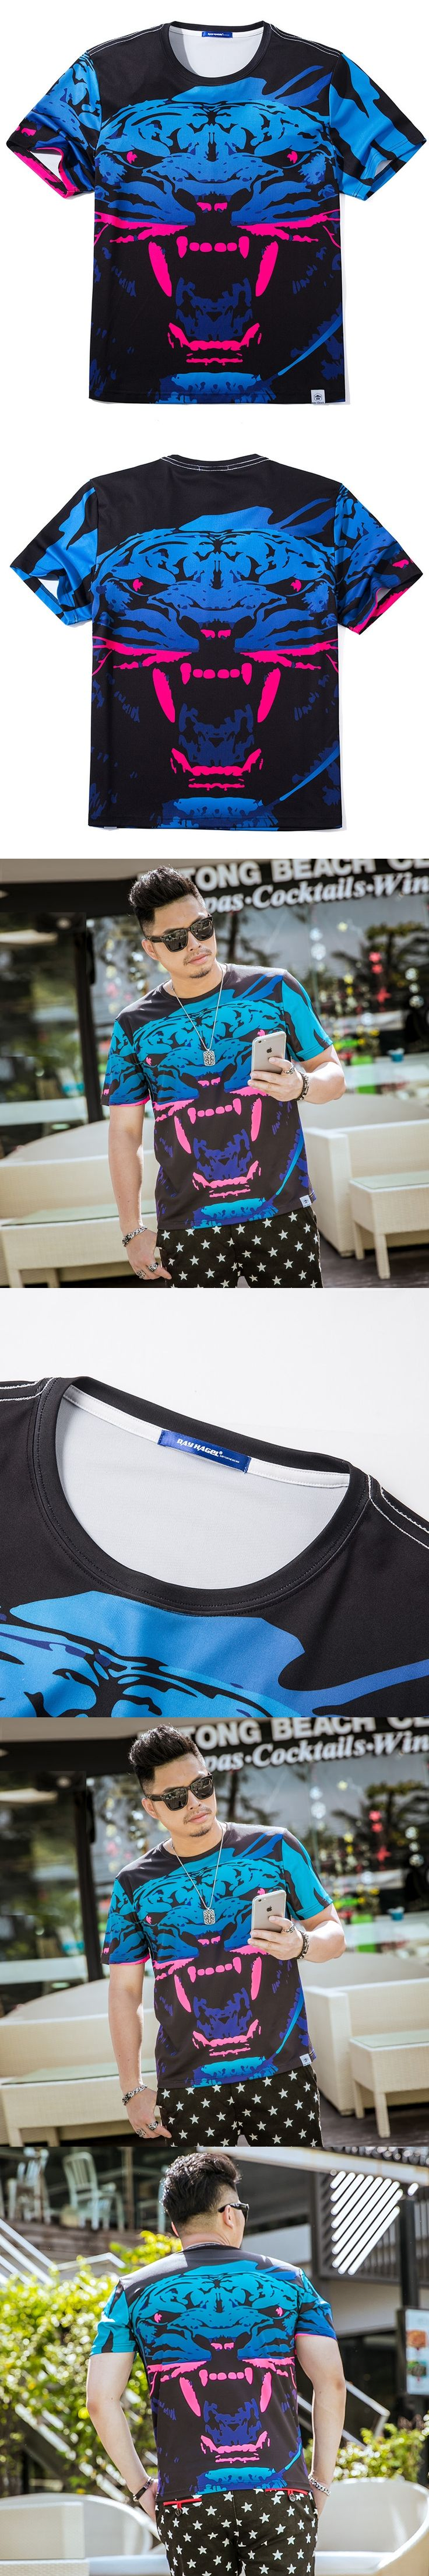 2017 Summer Hot sale New pattern Fashion Men's shirts Large size T-shirt Digital printed blouse Charm Nice East WX6188